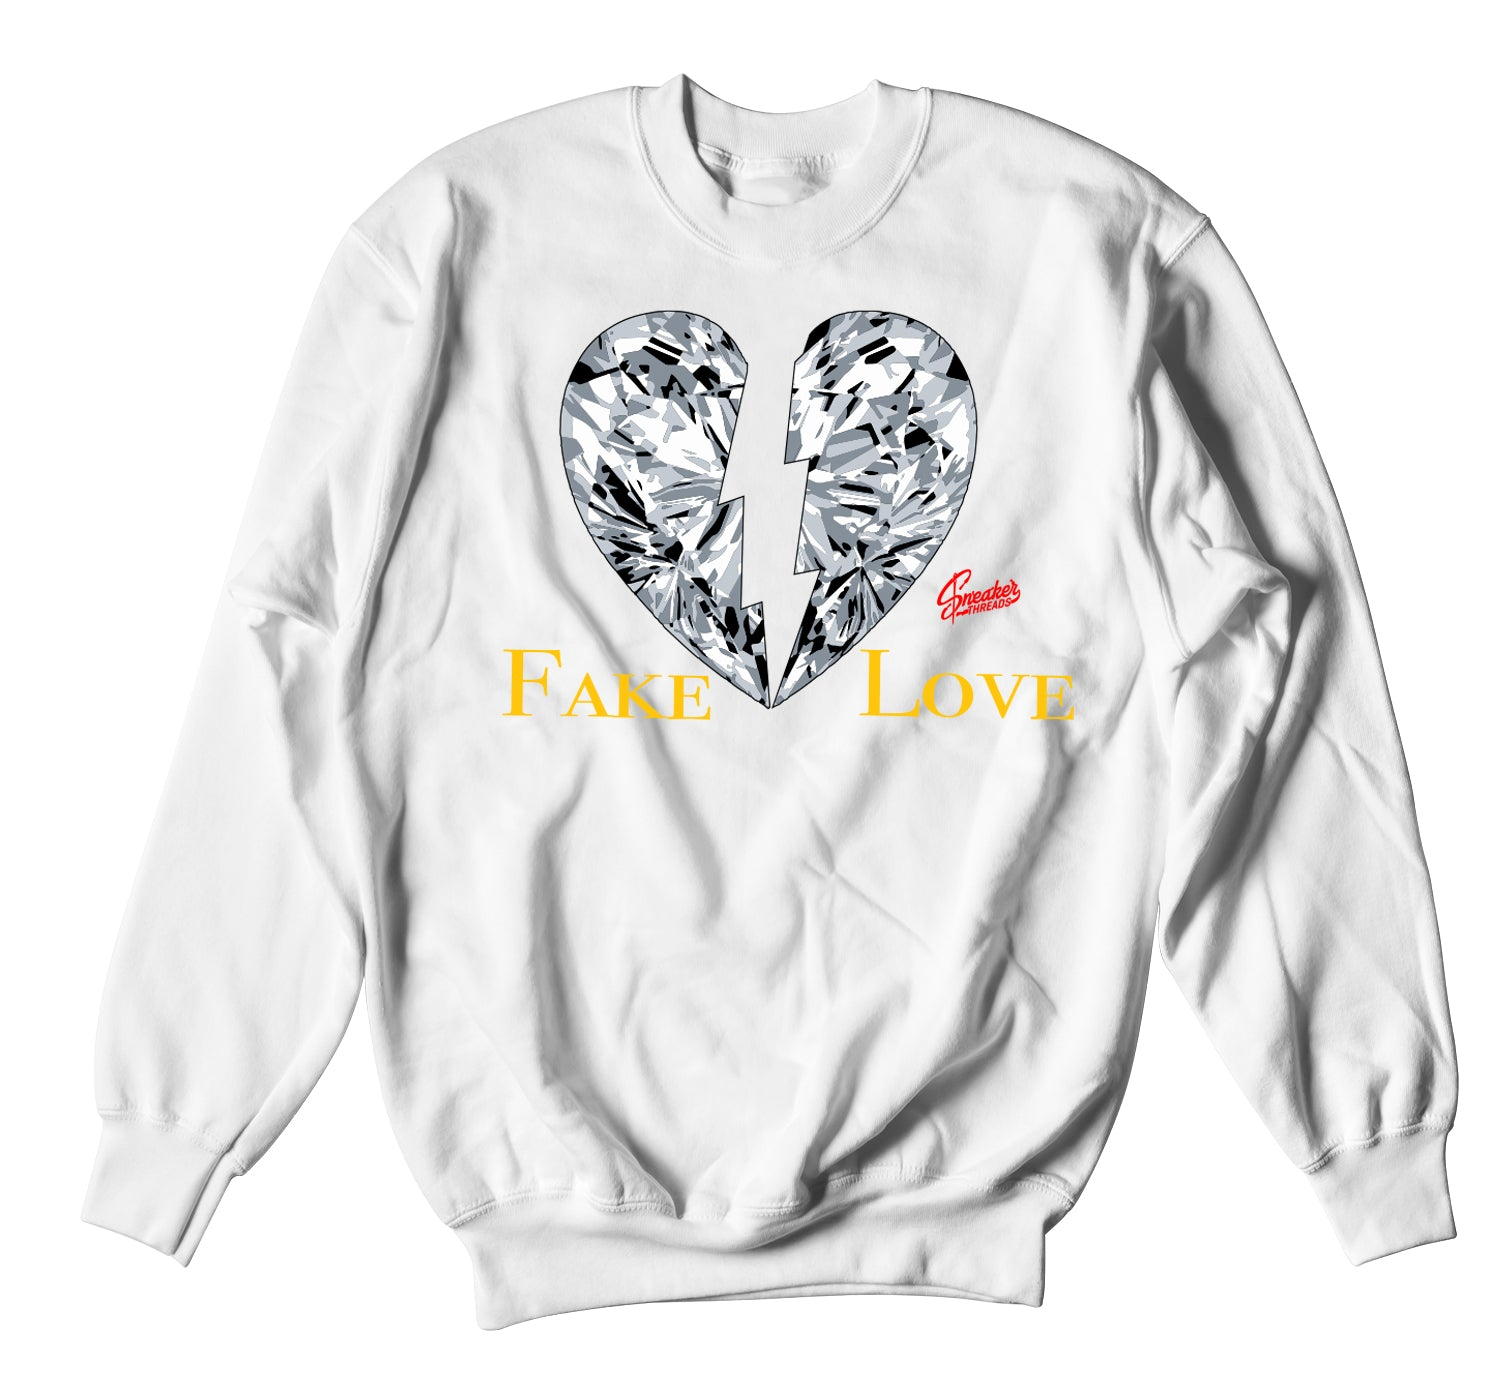 Jordan 3 Cool Grey Sweater - Fake Love - White